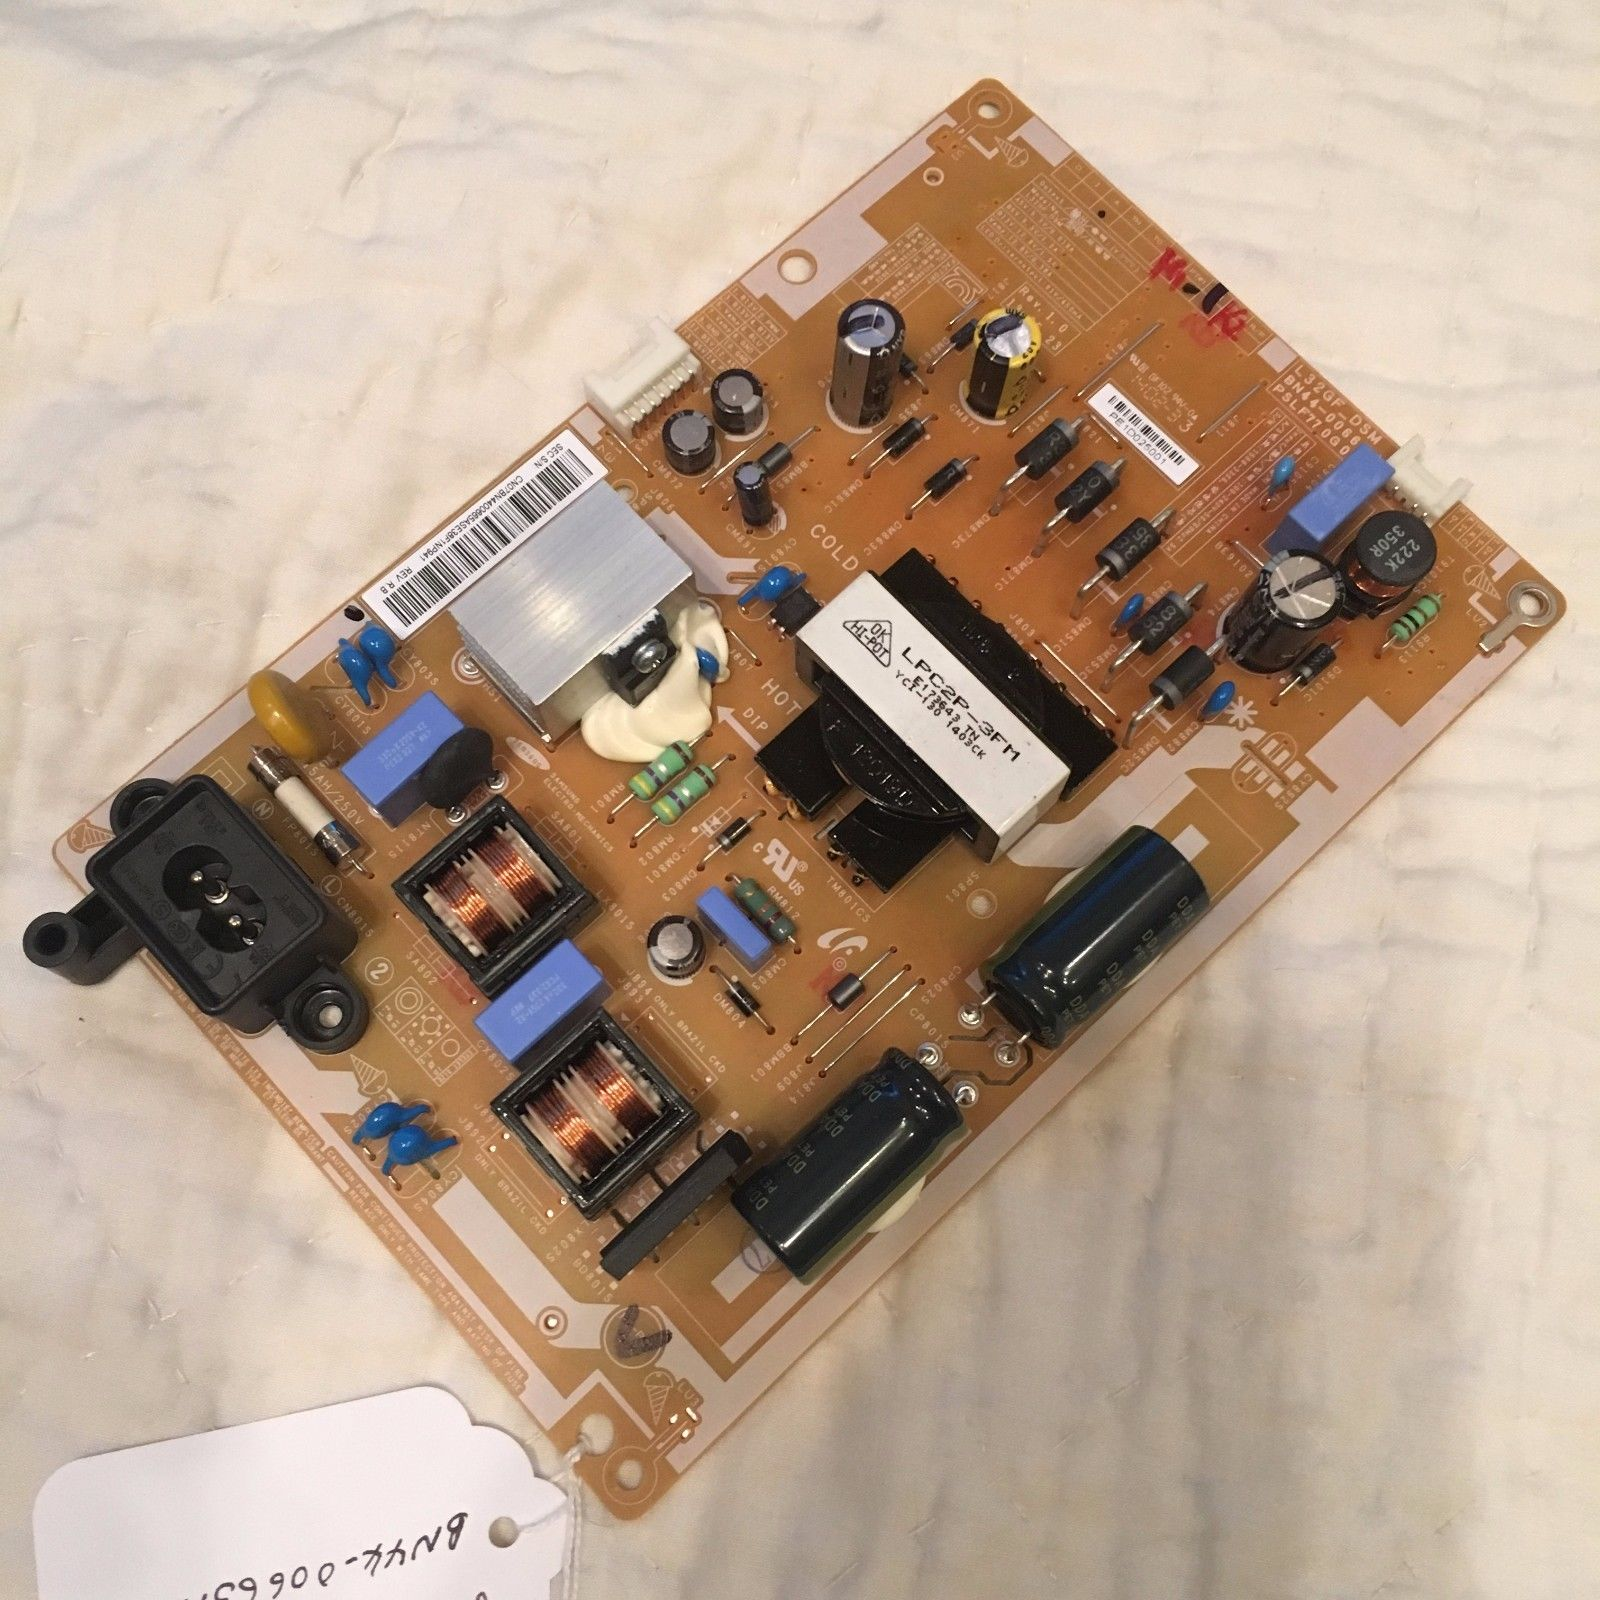 NEW SAMSUNG BN44-00665A POWER SUPPLY BOARD FOR UN32EH5300